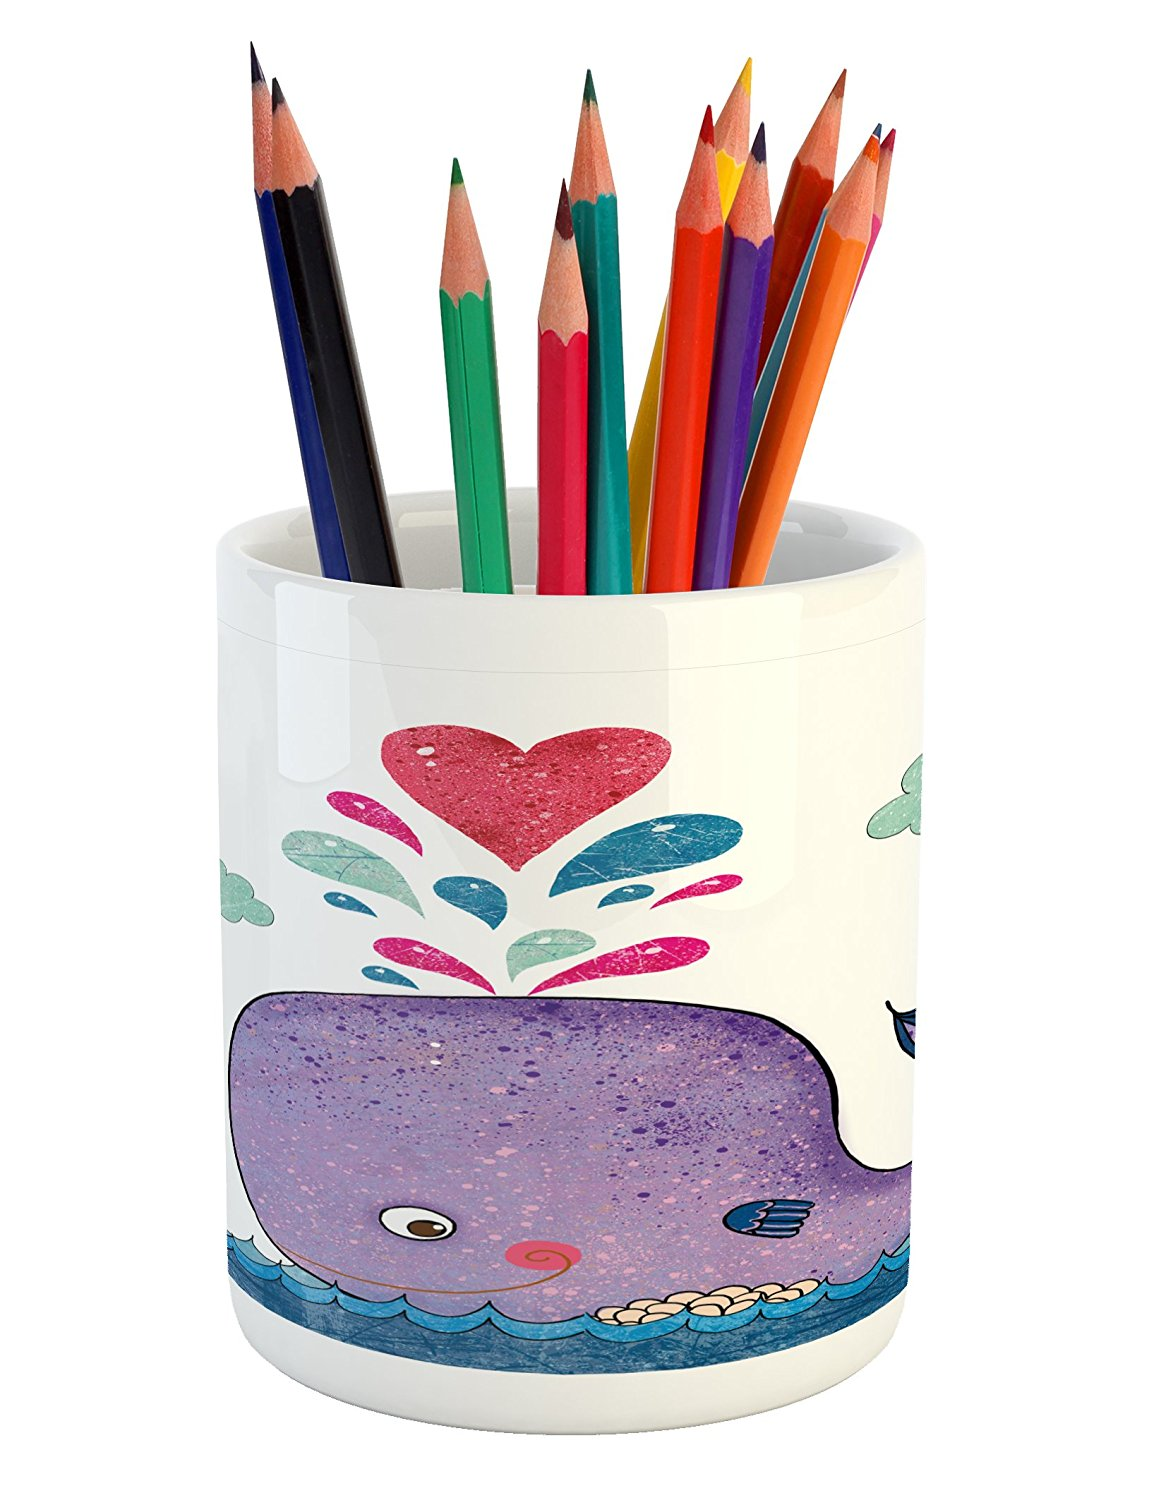 Whale Pencil Pen Holder by Ambesonne, Cute Smiley Whale with Love Valentine's Hearts and Clouds on Sea Kids Print, Printed Ceramic Pencil Pen Holder for Desk Office Accessory, Blue Purple and Red,